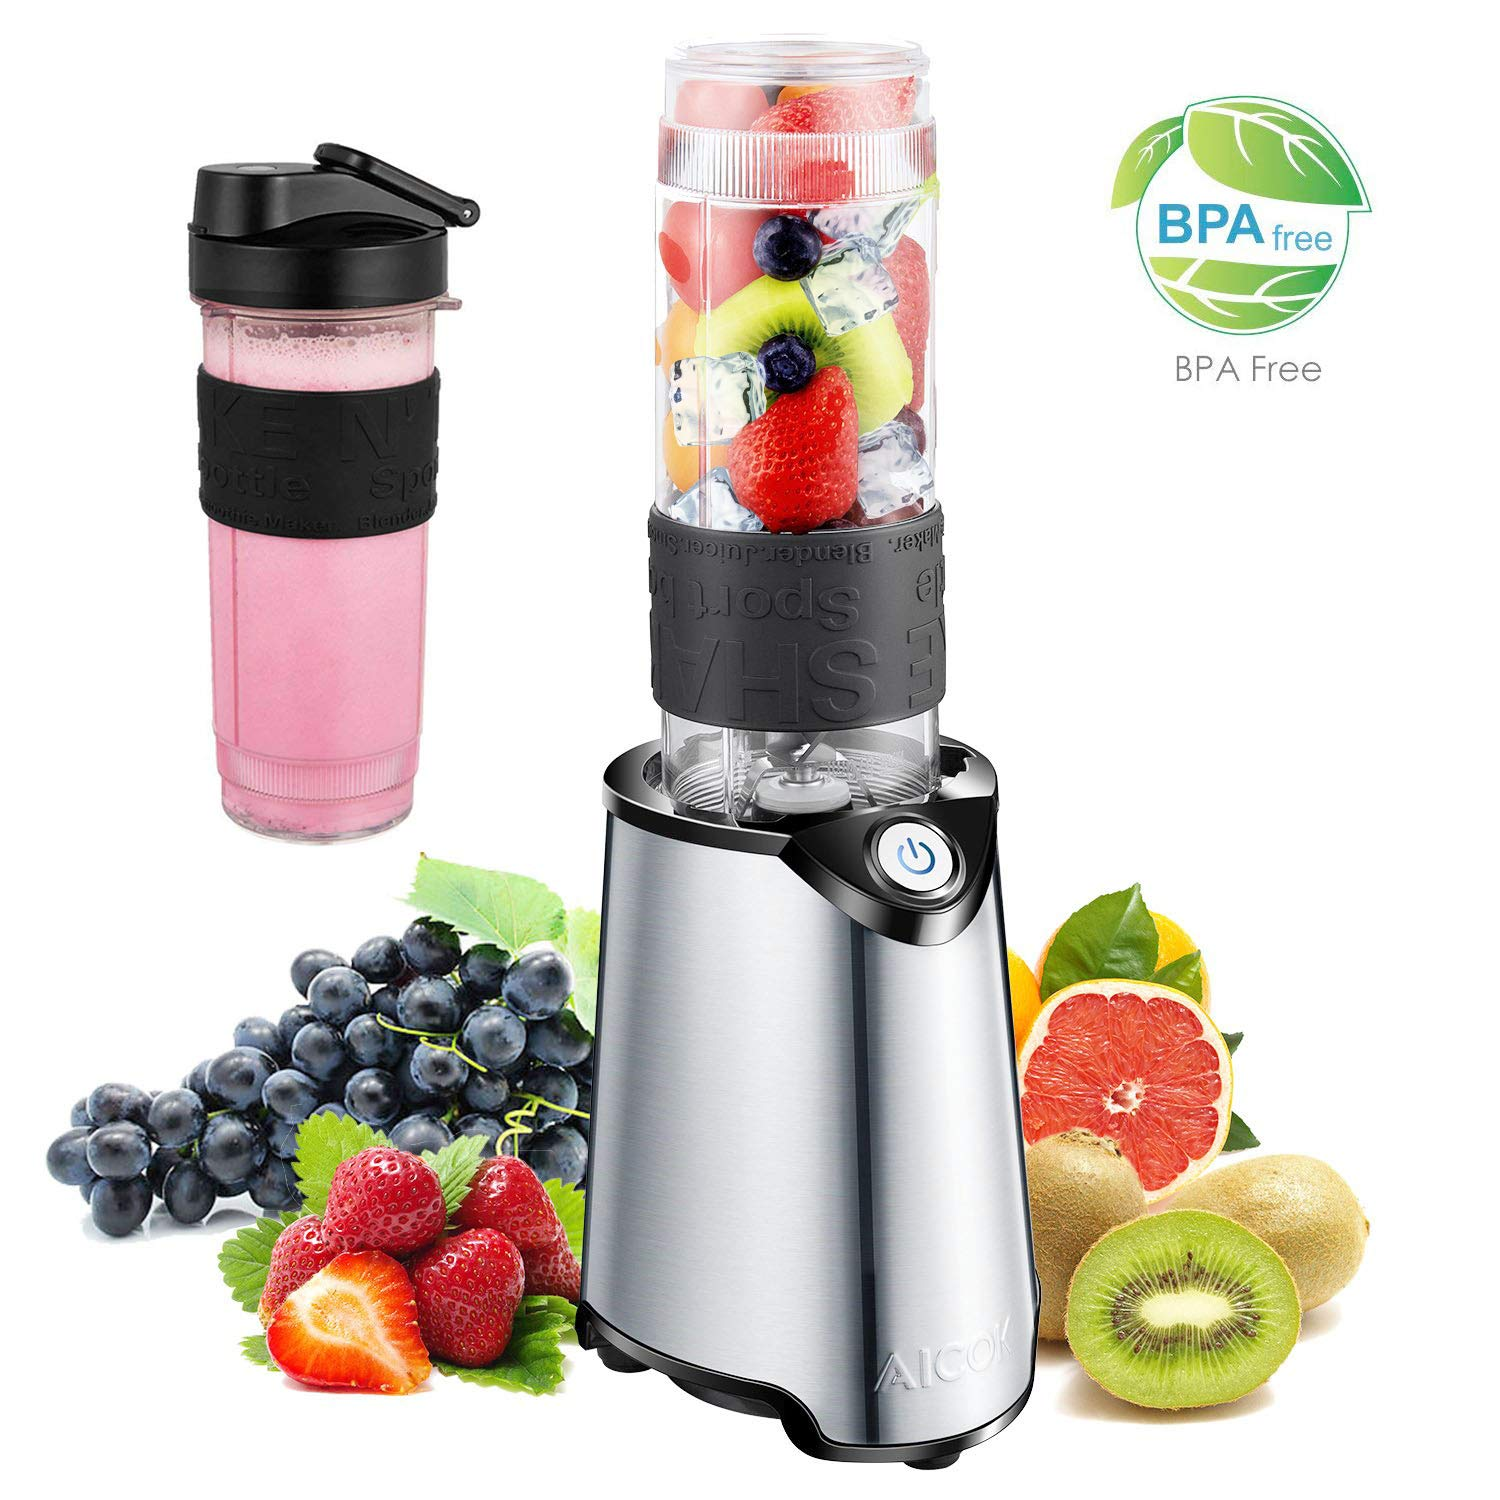 Blender, Aicok Personal Smoothie Blender, Stainless Steel Single Serve Blender, with 21 oz BPA Free Portable Travel Sports Bottle and Extra Travel Lid, 300W, Silver by AICOK